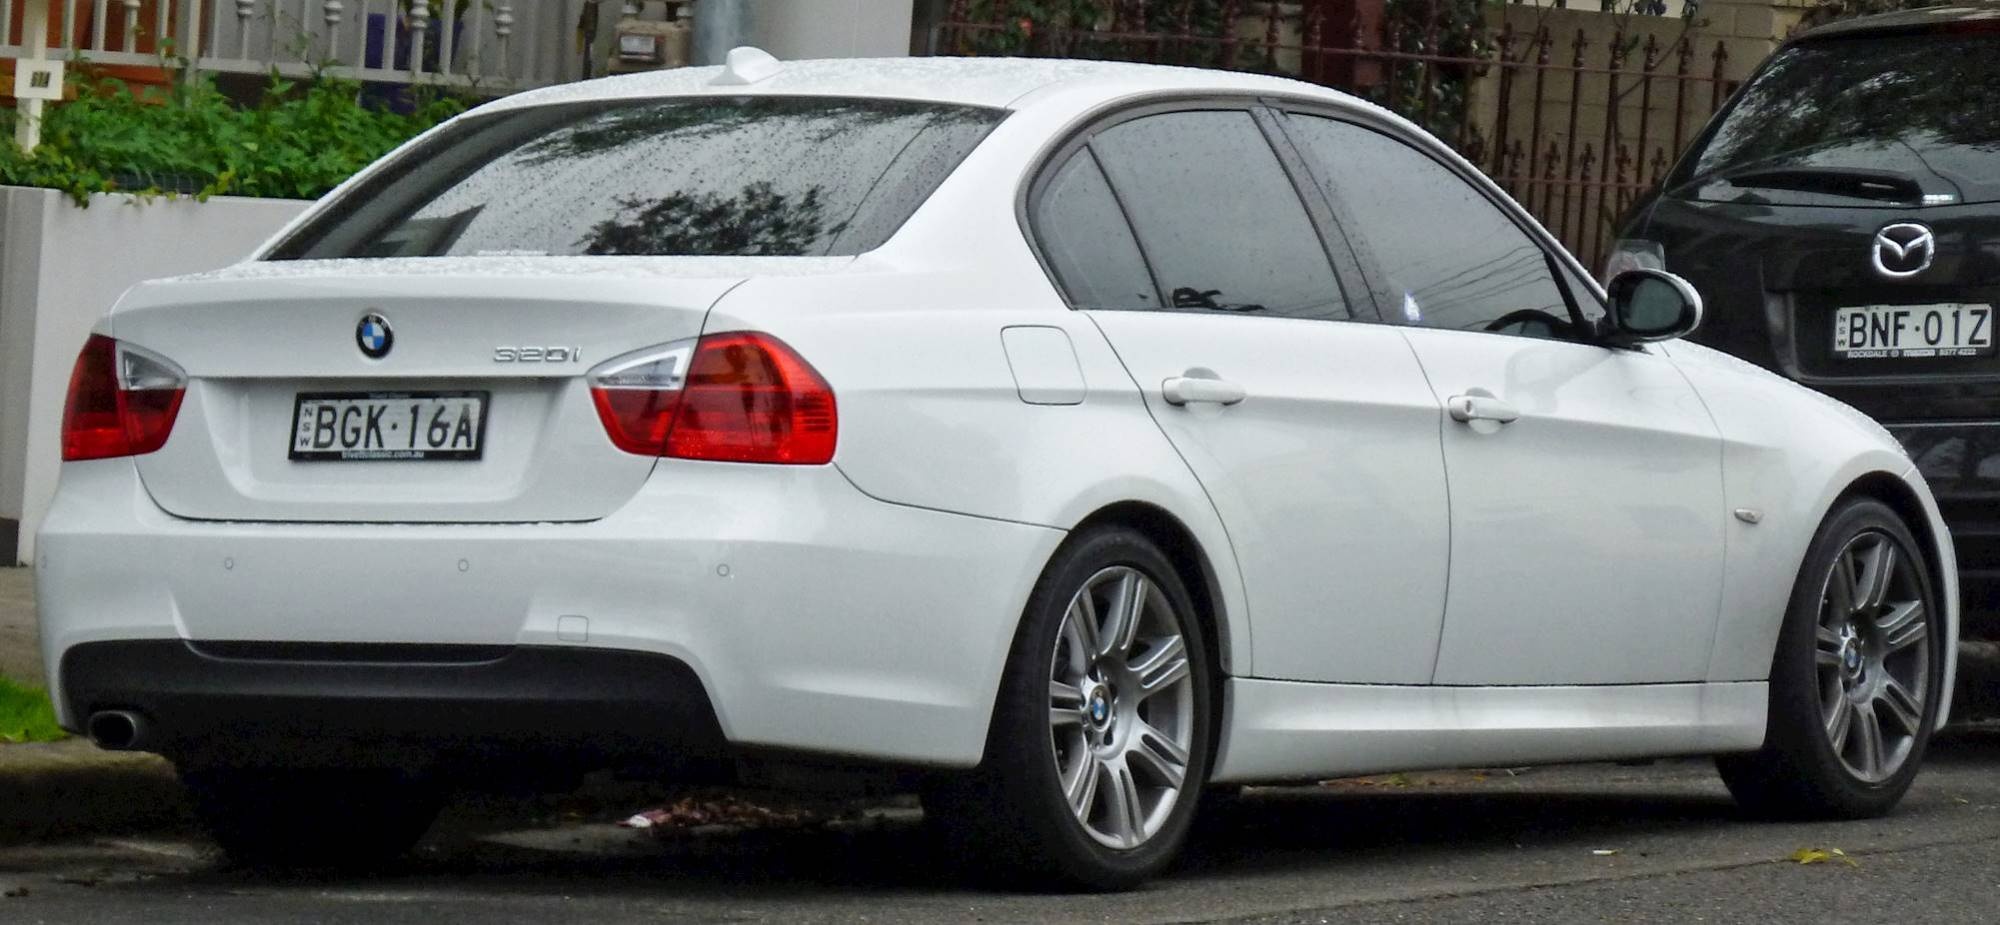 hight resolution of bmw 320i 2011